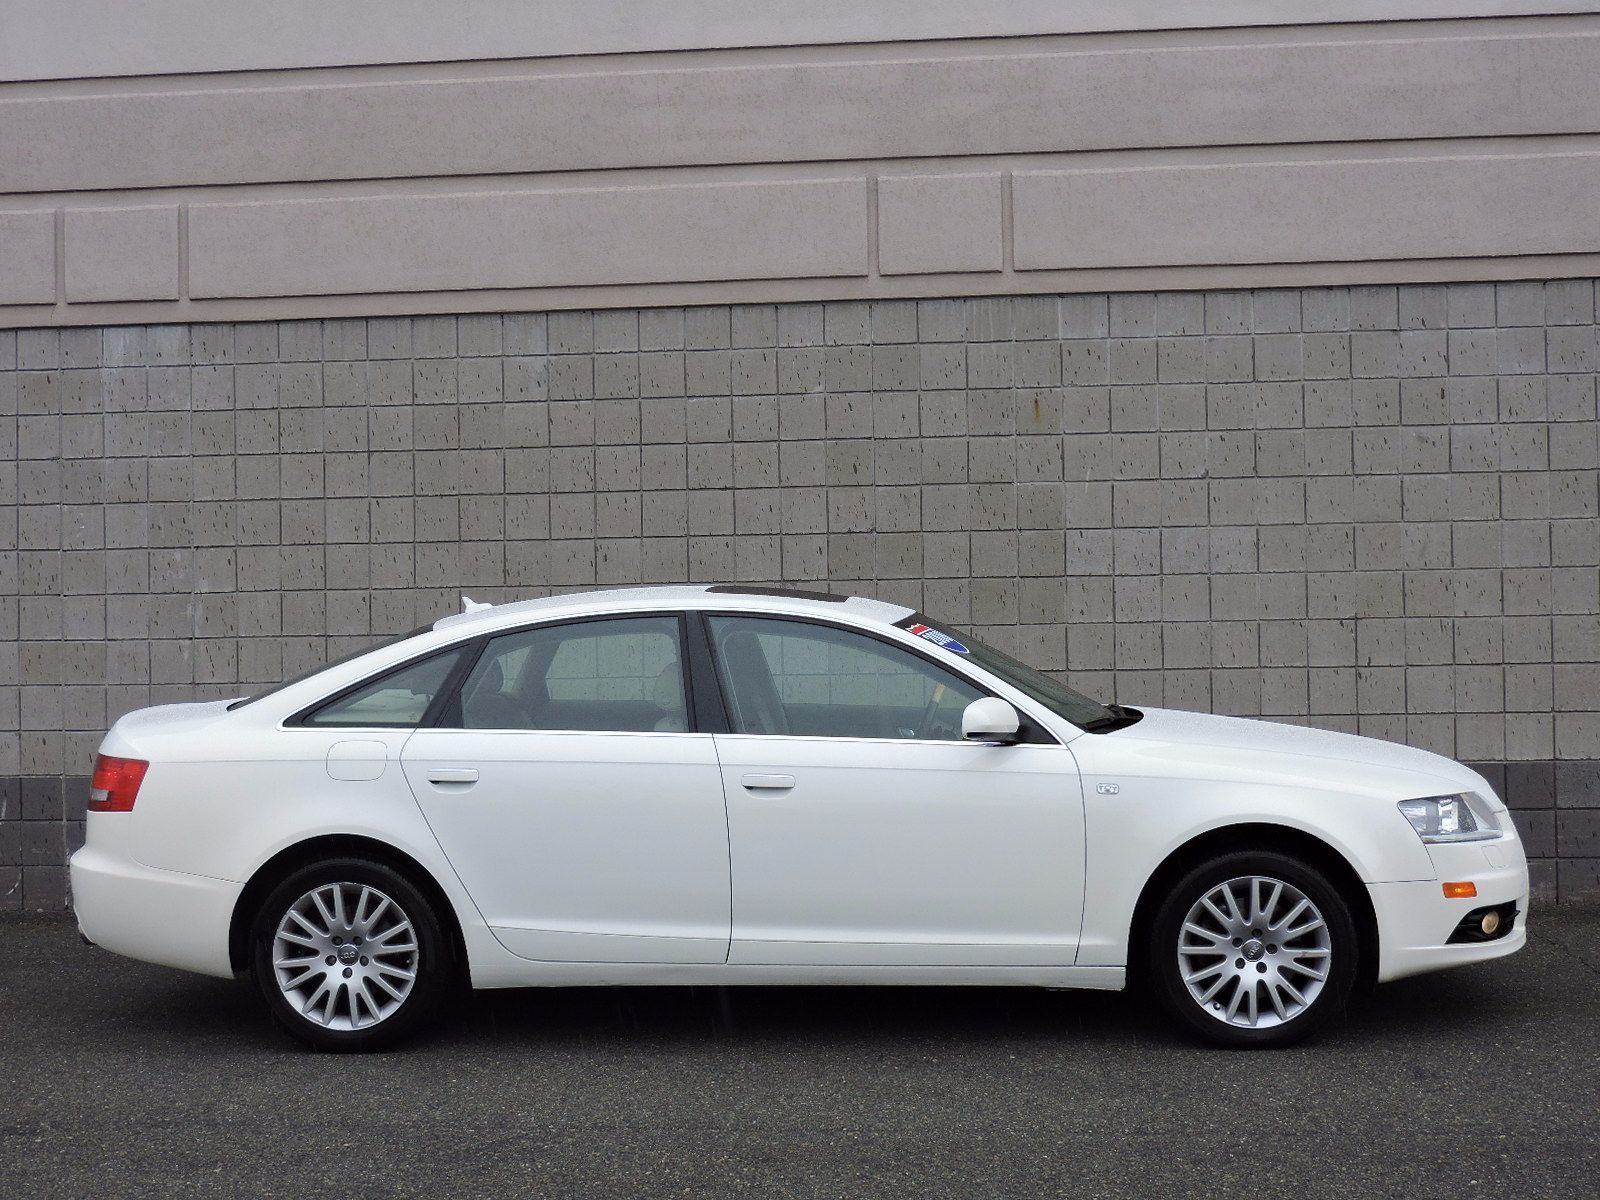 Photos Of A Used 2008 Audi A6 At Auto House Usa Saugus